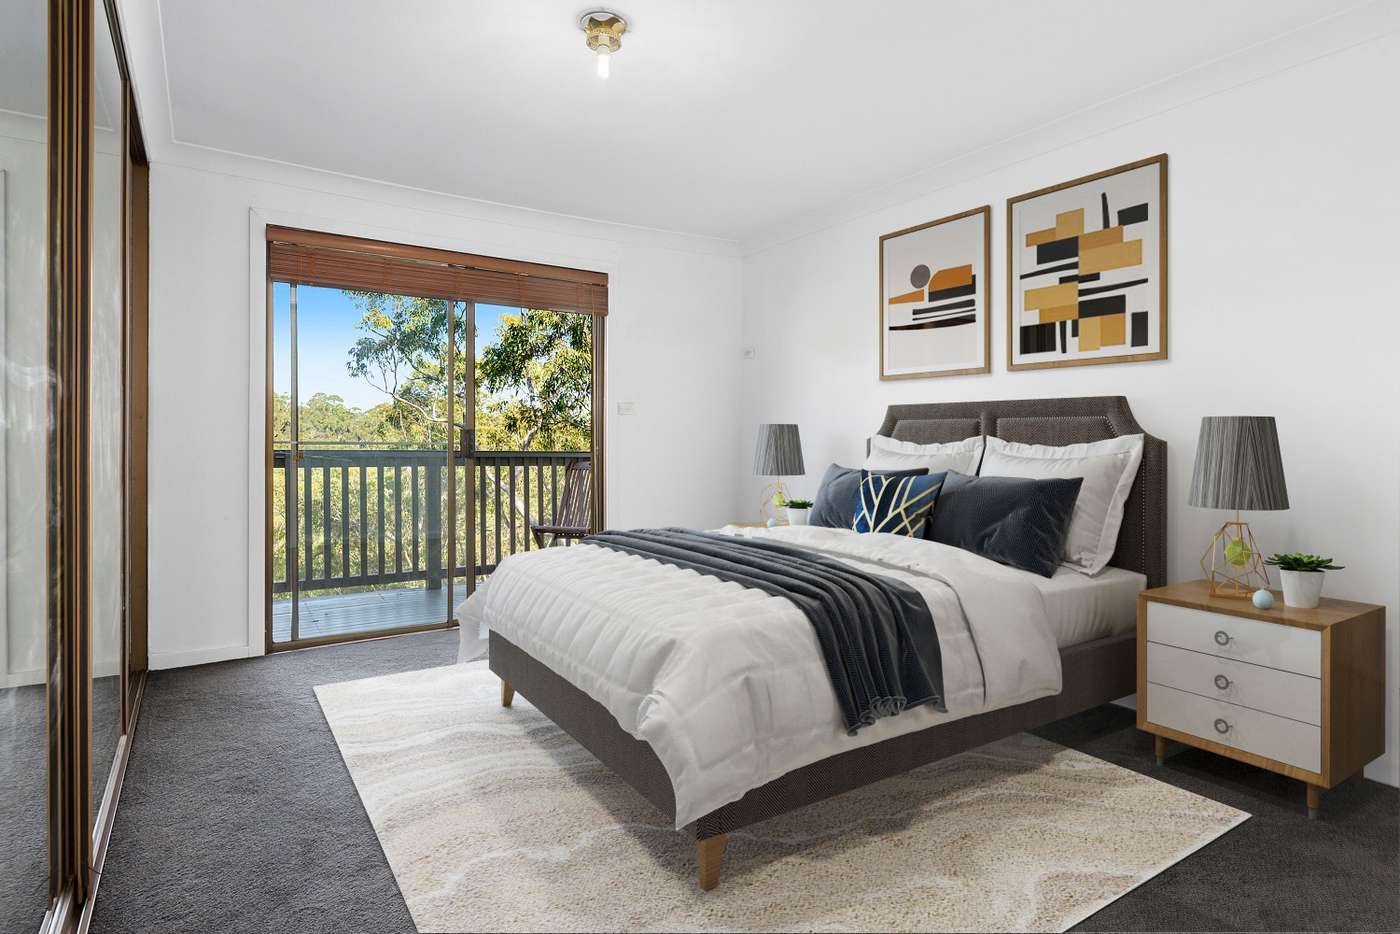 Fifth view of Homely house listing, 9 Barkala Place, Westleigh NSW 2120